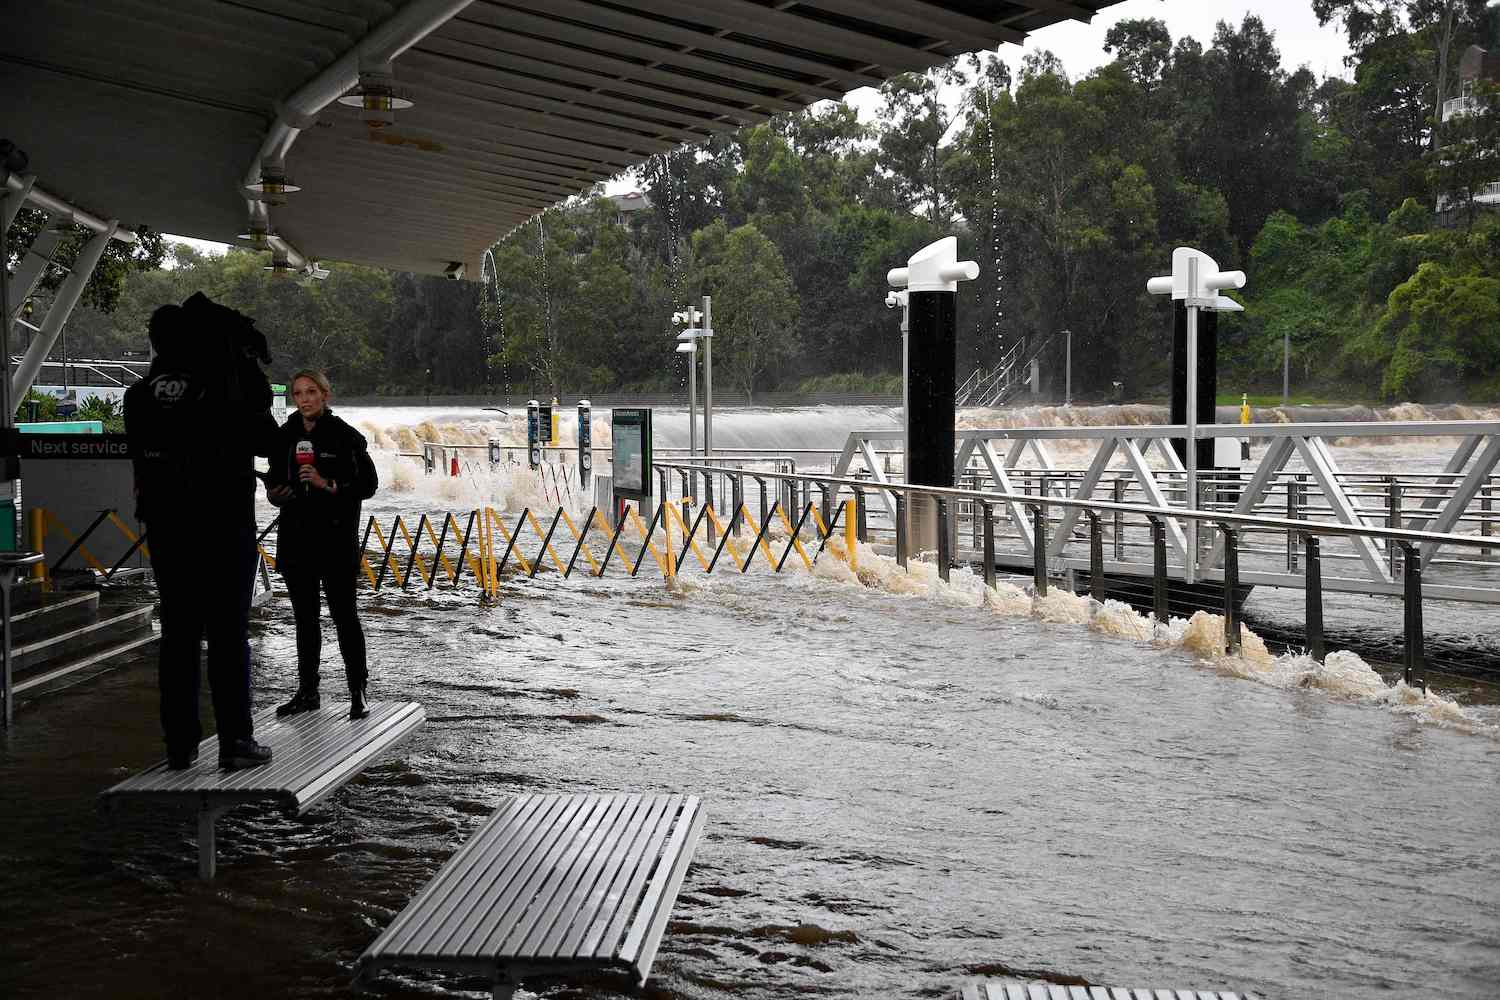 A TV crew films a report beside the overflowing Parramatta River in Sydney on Saturday. (AFP Photo)